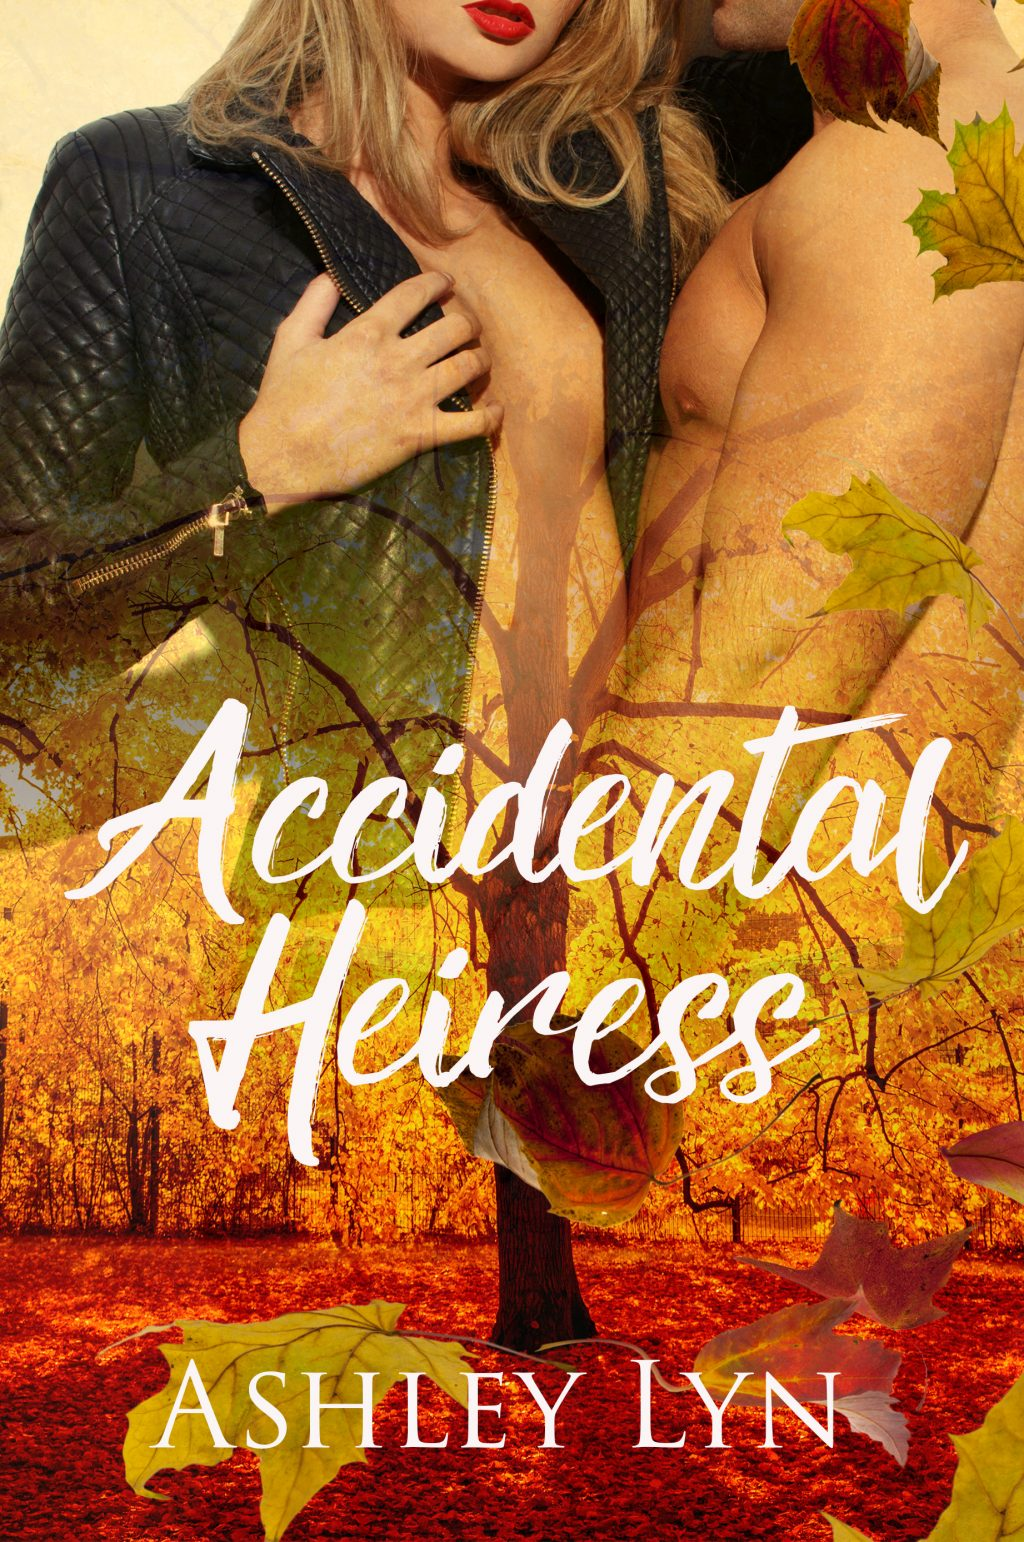 Accidental Heiress (Welcome to Spartan Series) by Ashley Lyn